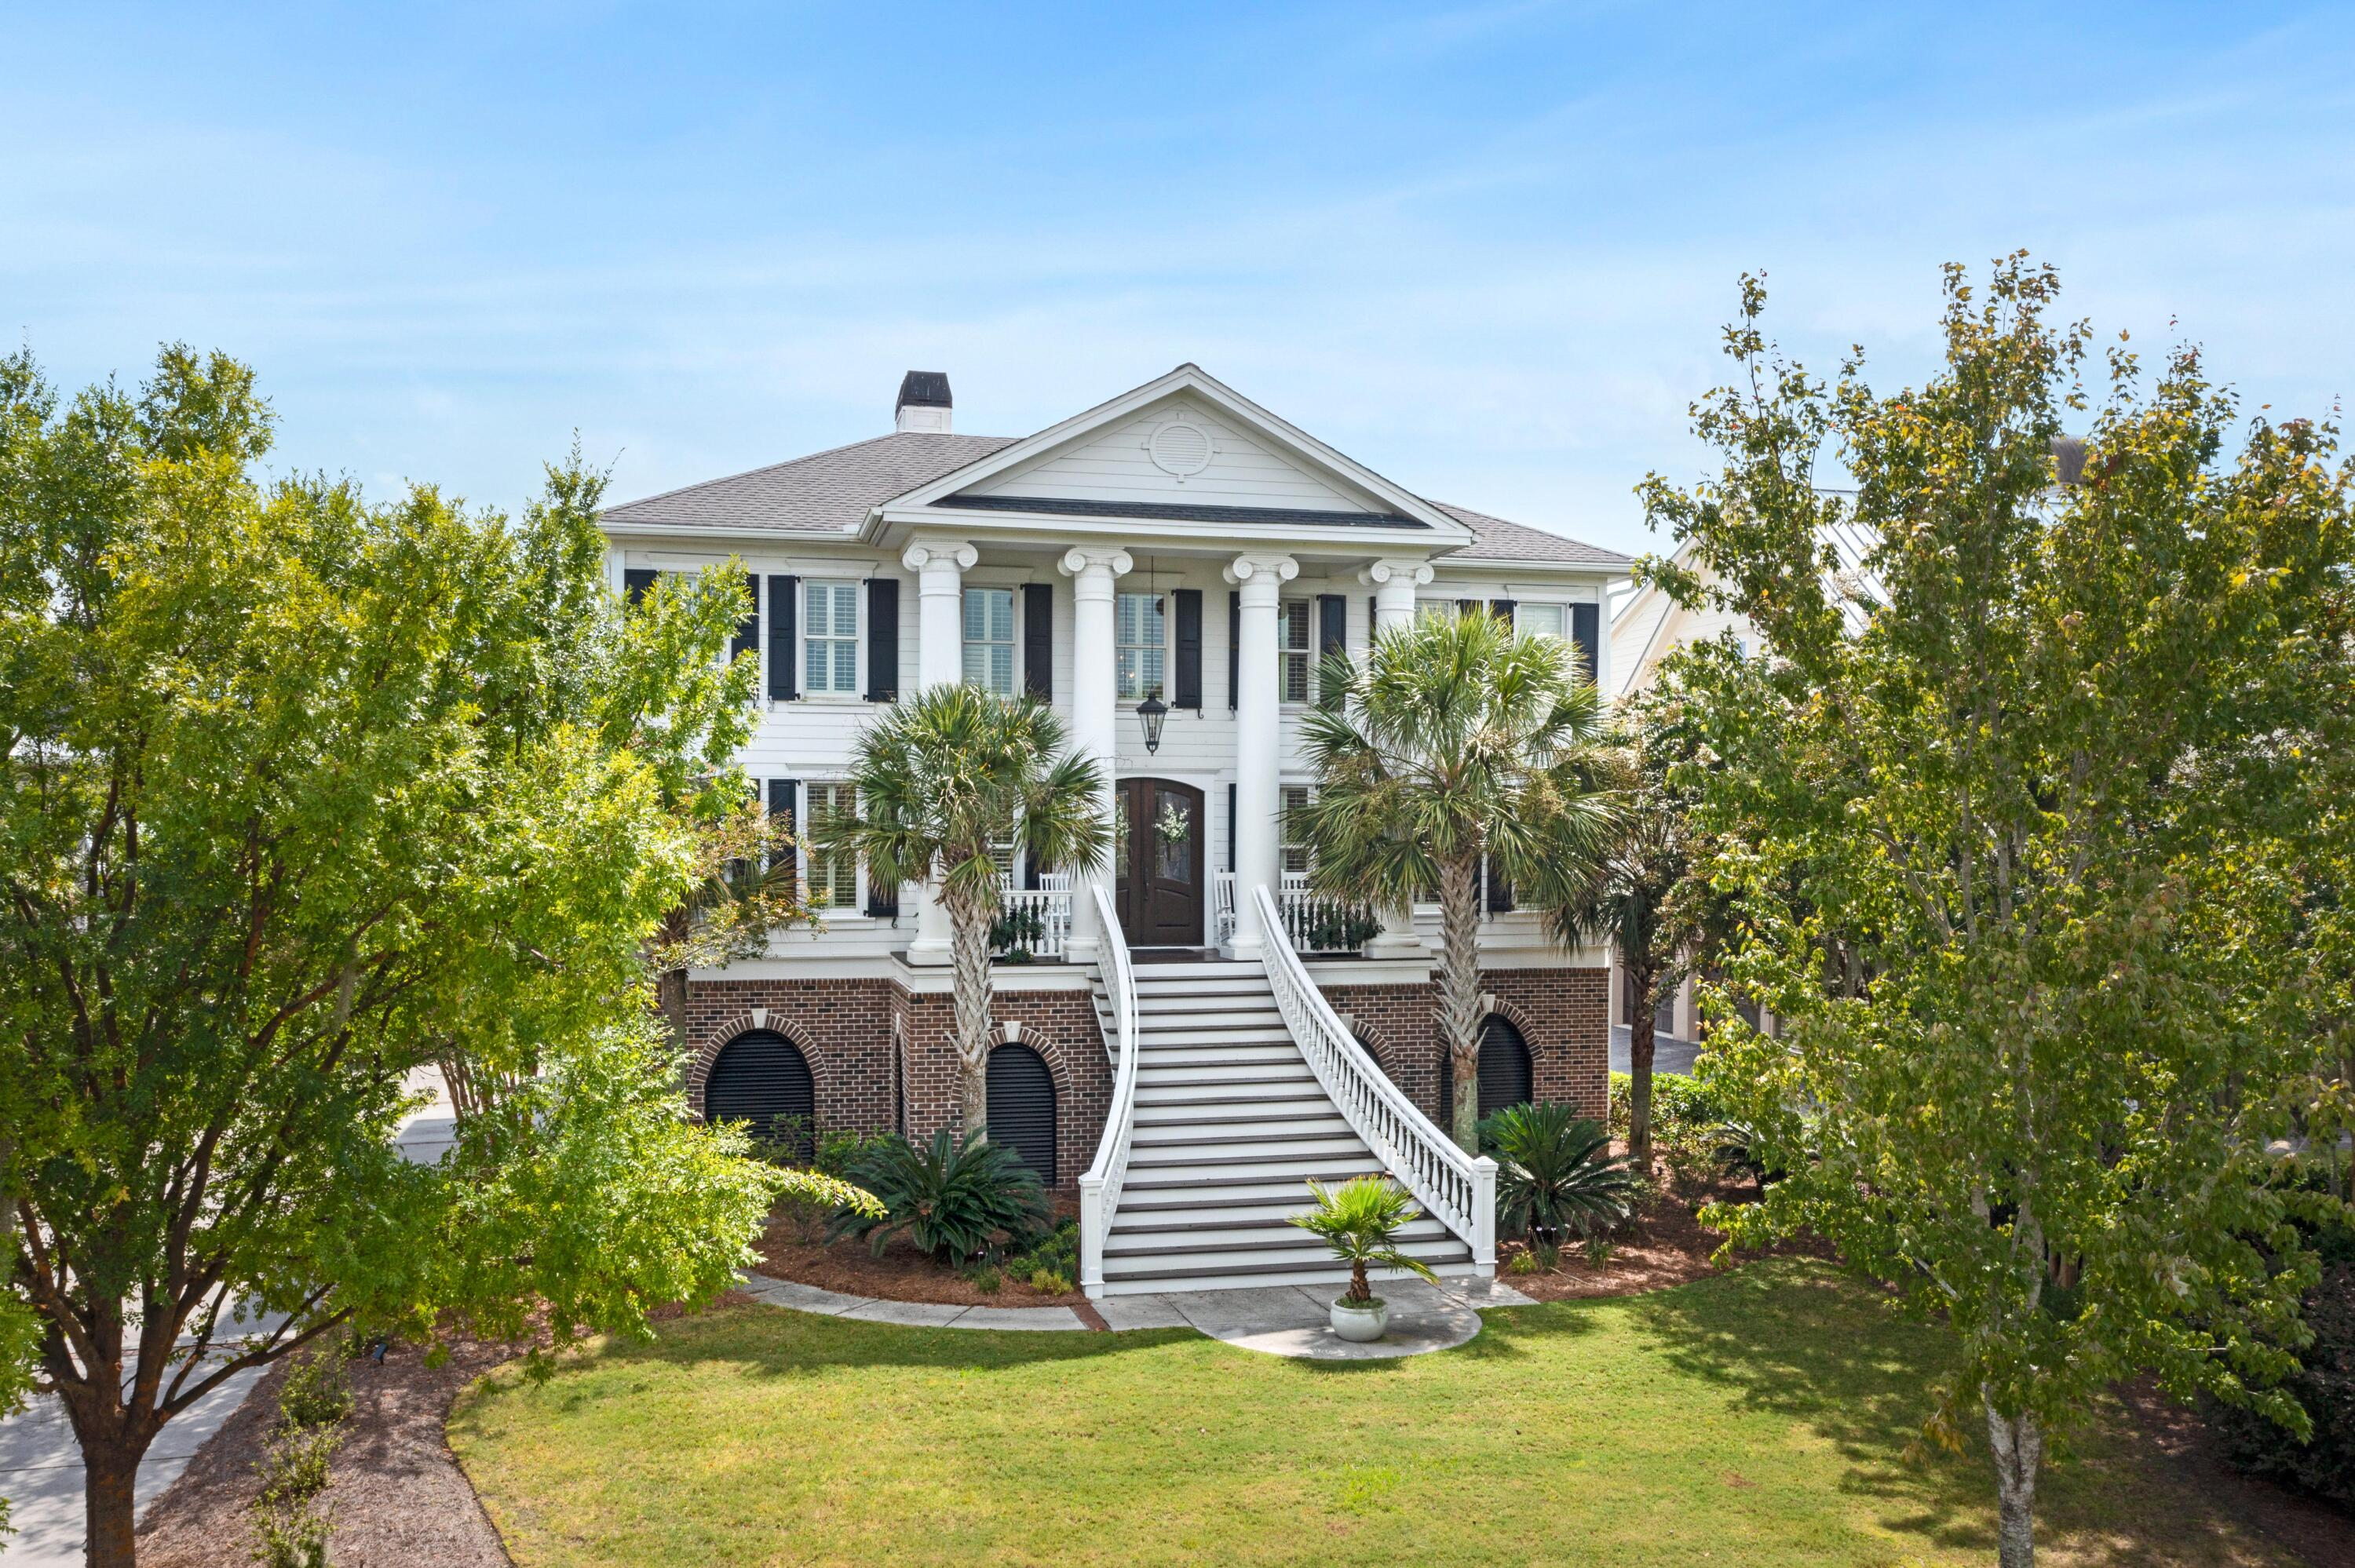 Rivertowne Country Club Homes For Sale - 1652 Rivertowne Country Club, Mount Pleasant, SC - 69